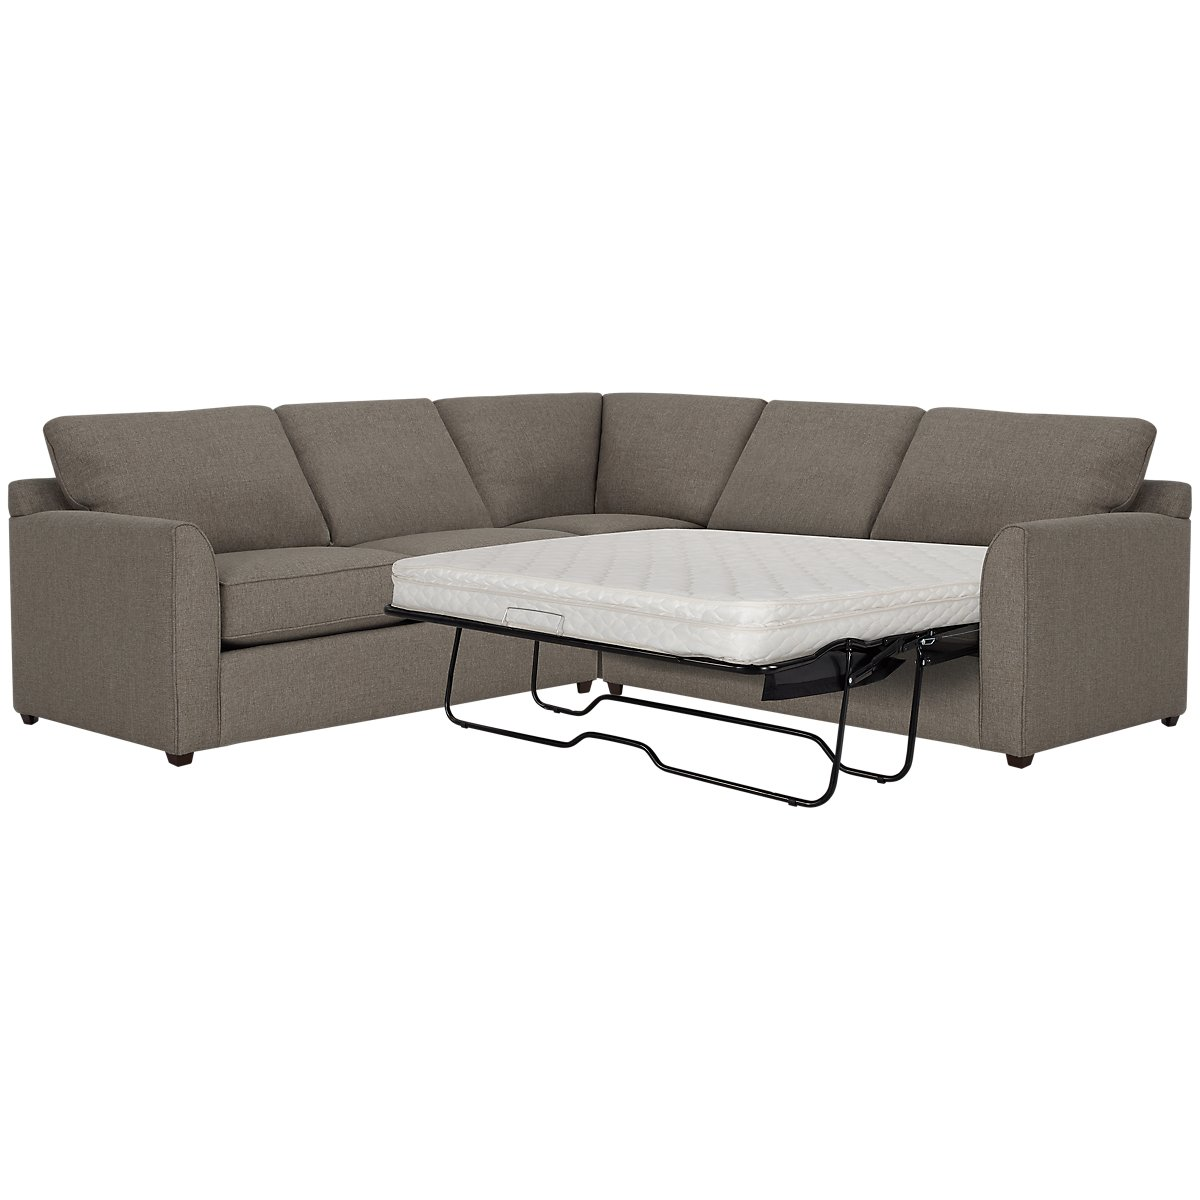 Asheville Brown Fabric Two-Arm Right Innerspring Sleeper Sectional